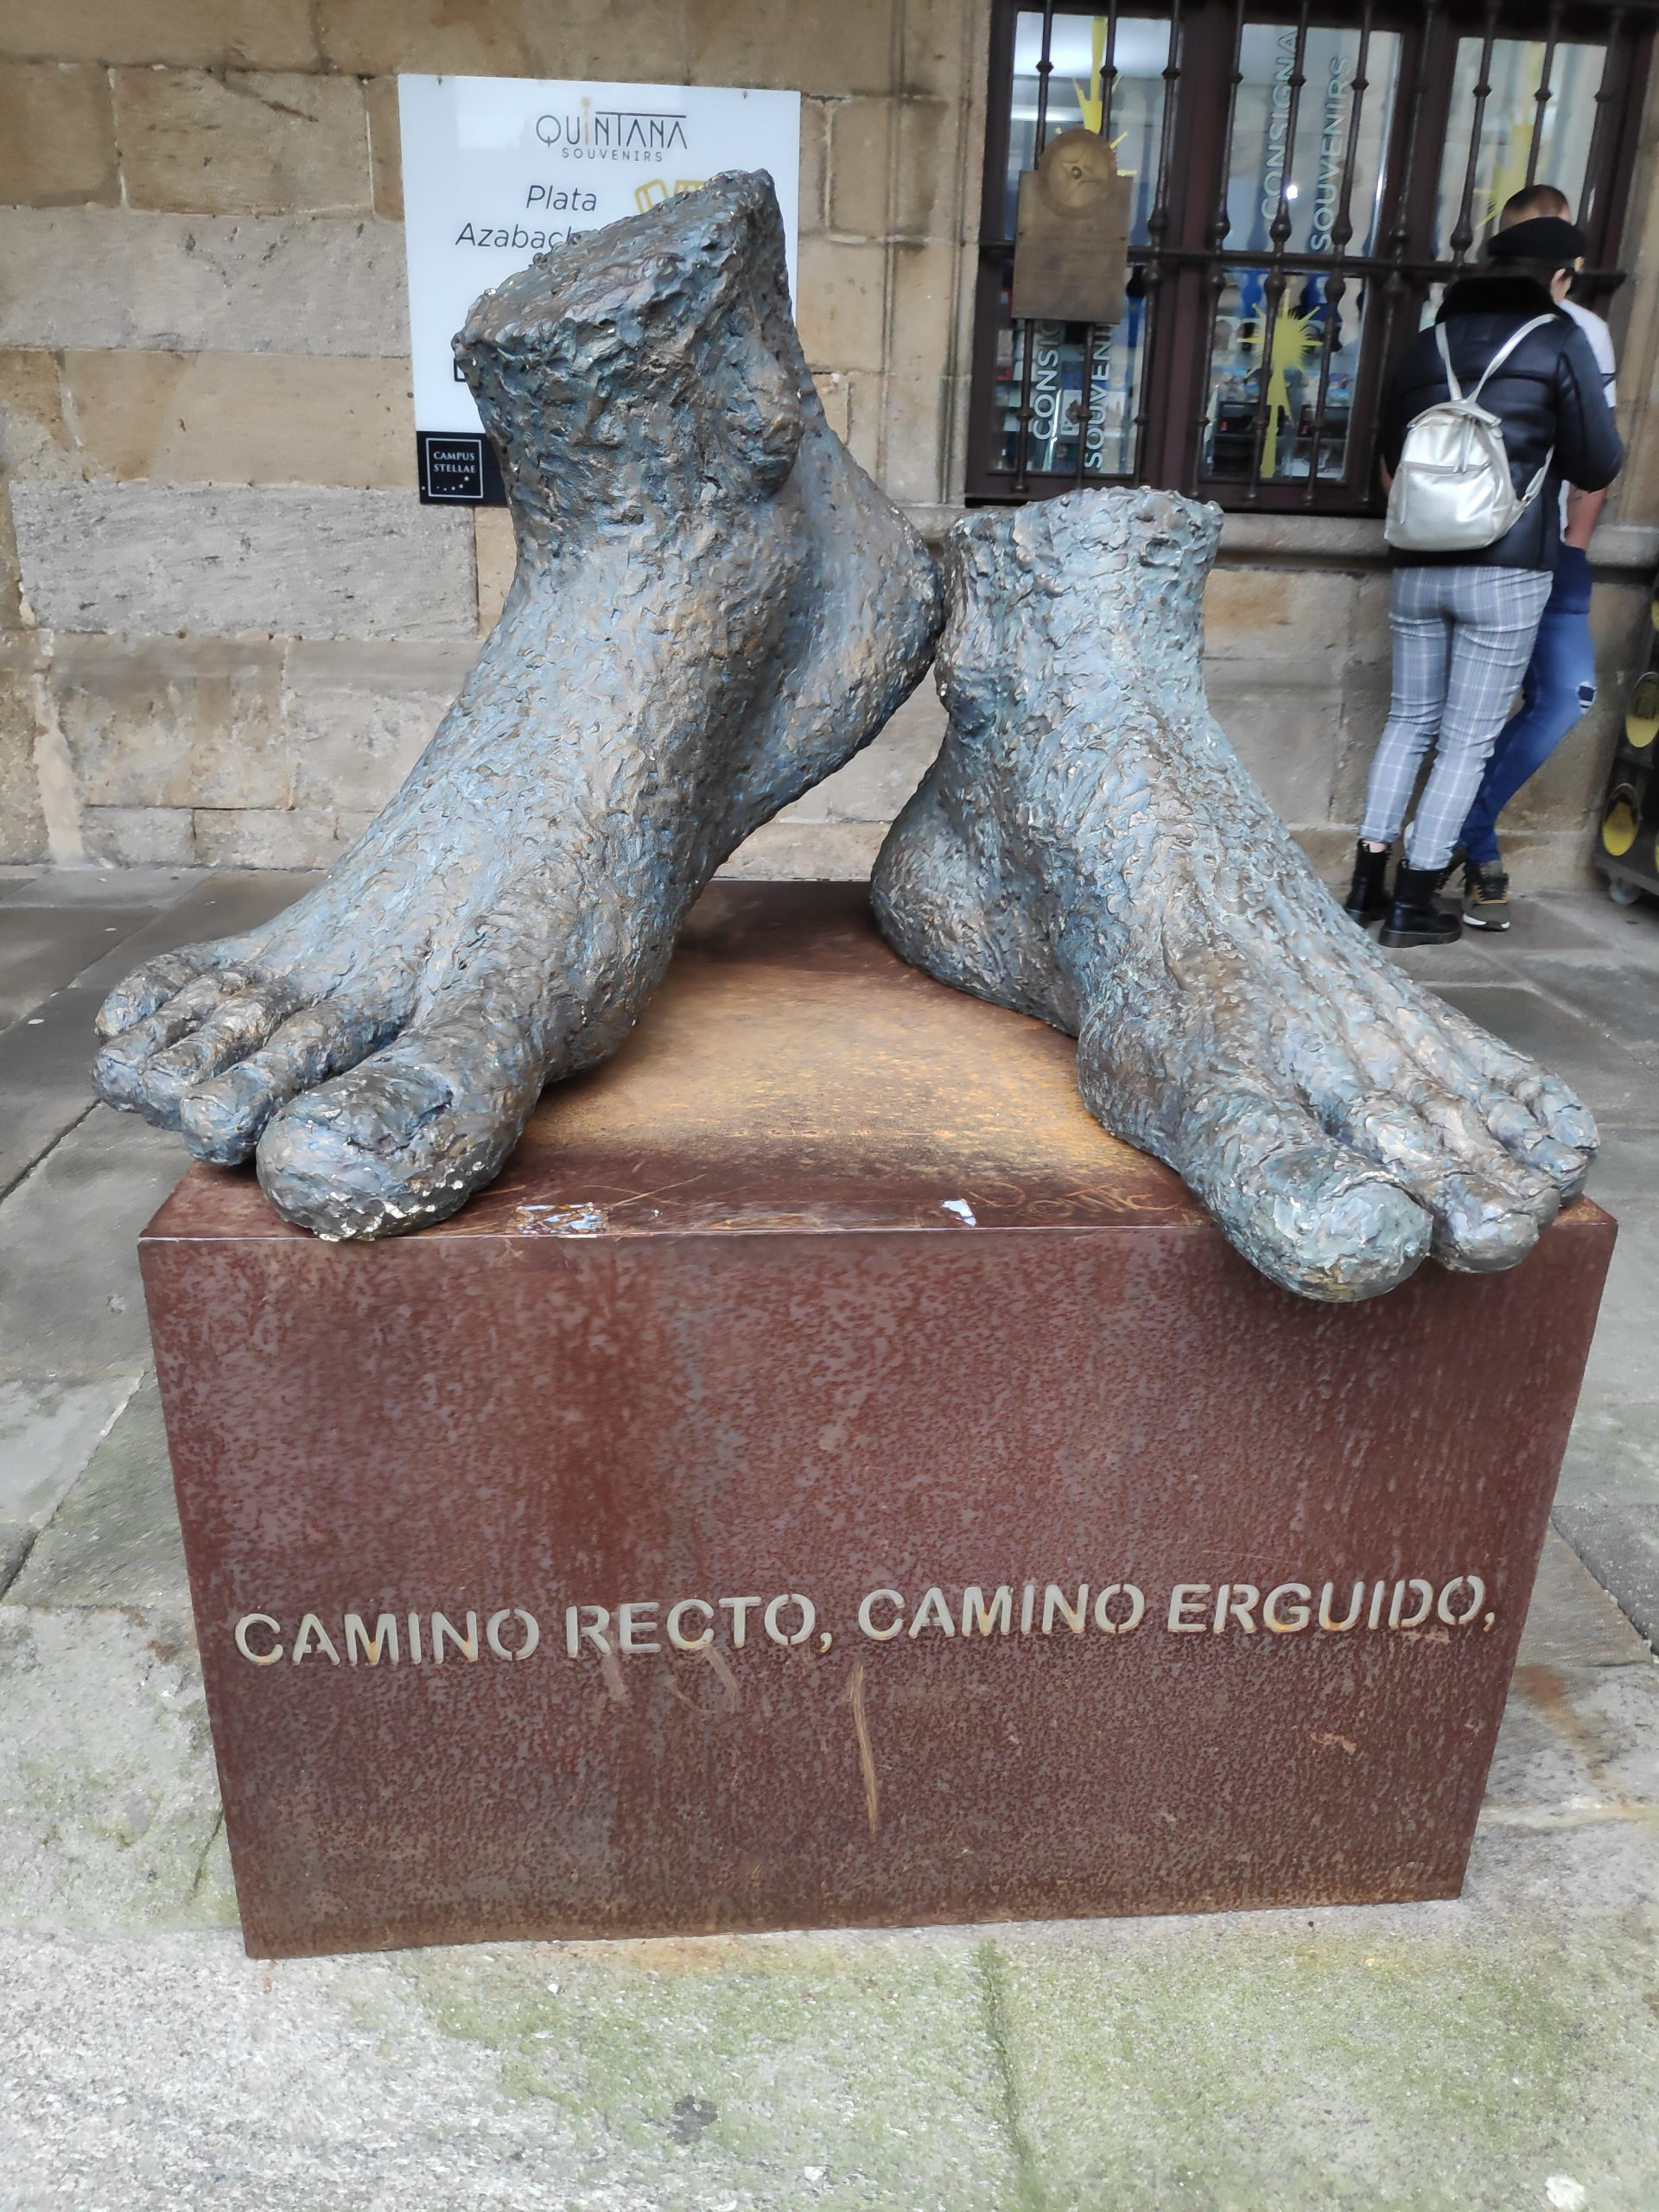 Another interesting statue in Santiago.